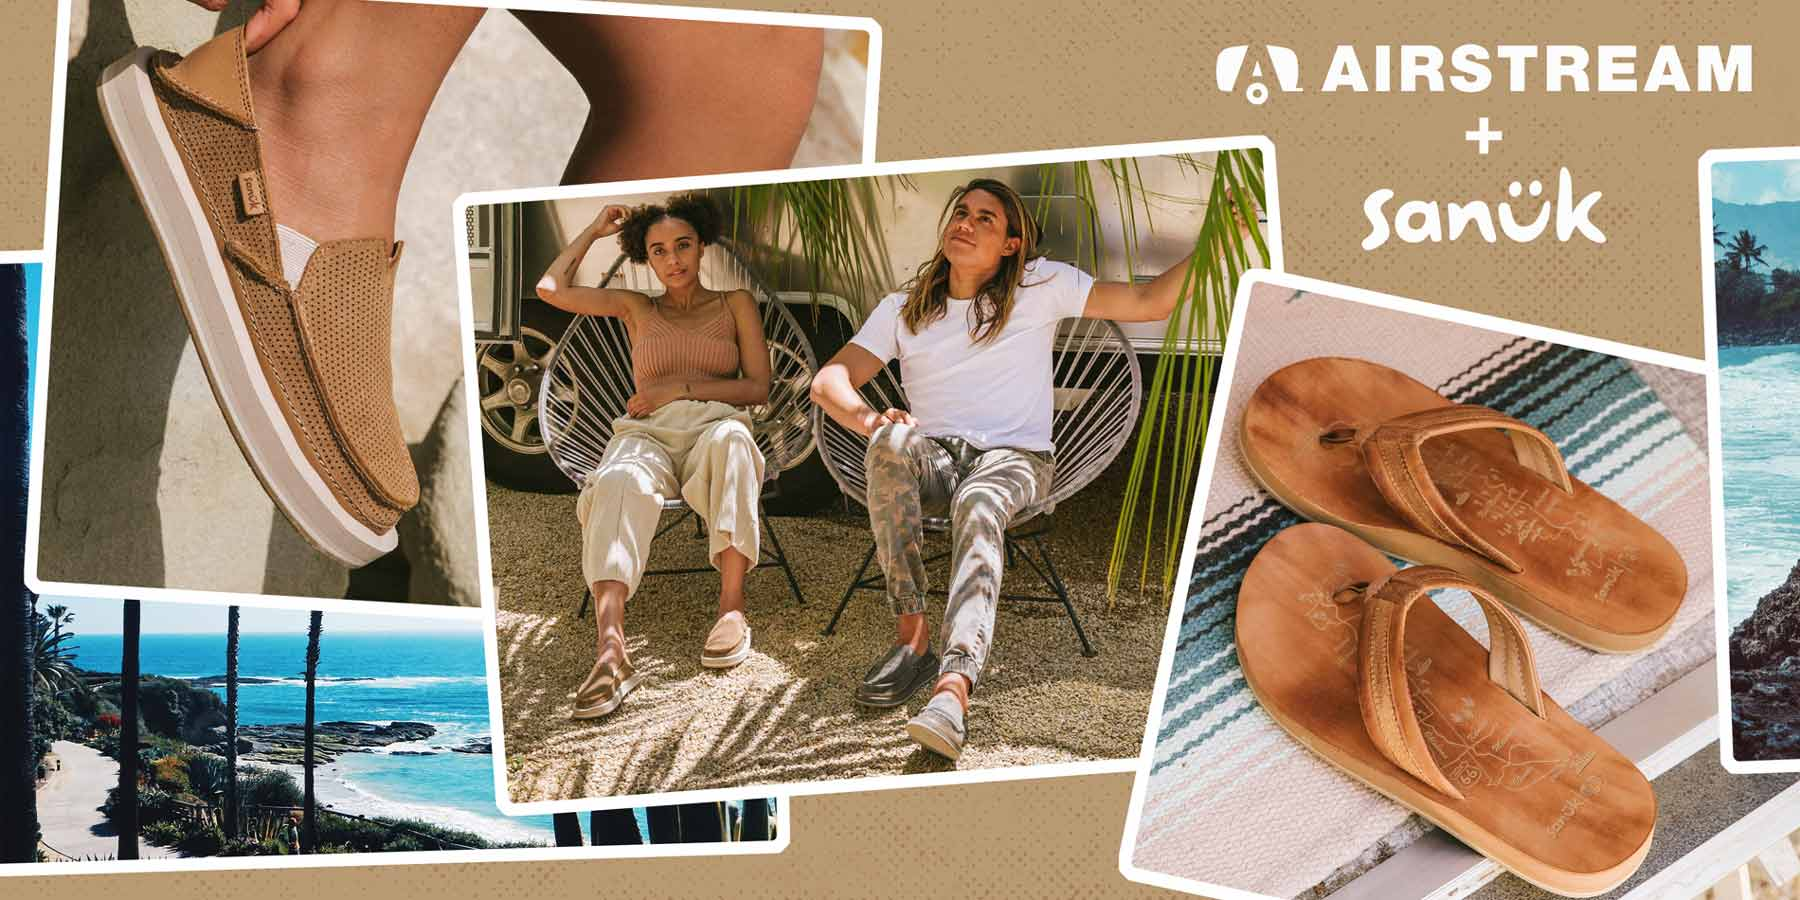 A collage of images with Sanuk Sandals.